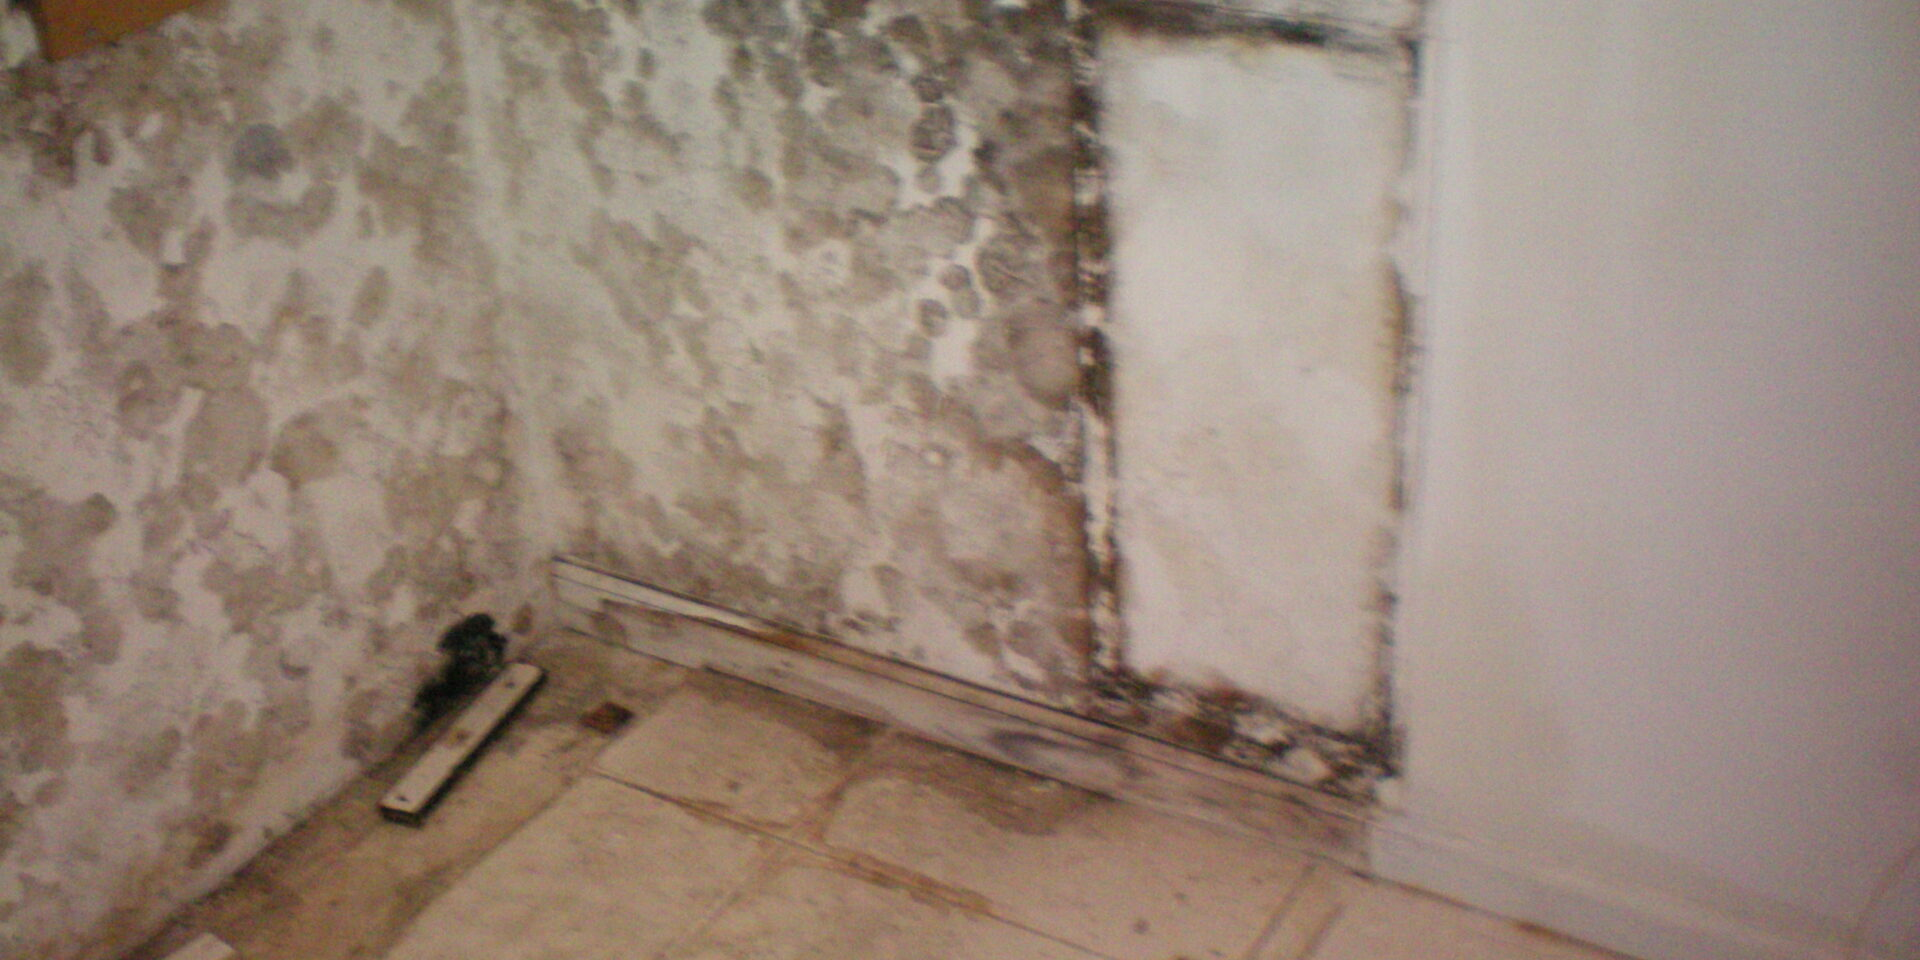 Exposing the damaged area (5)